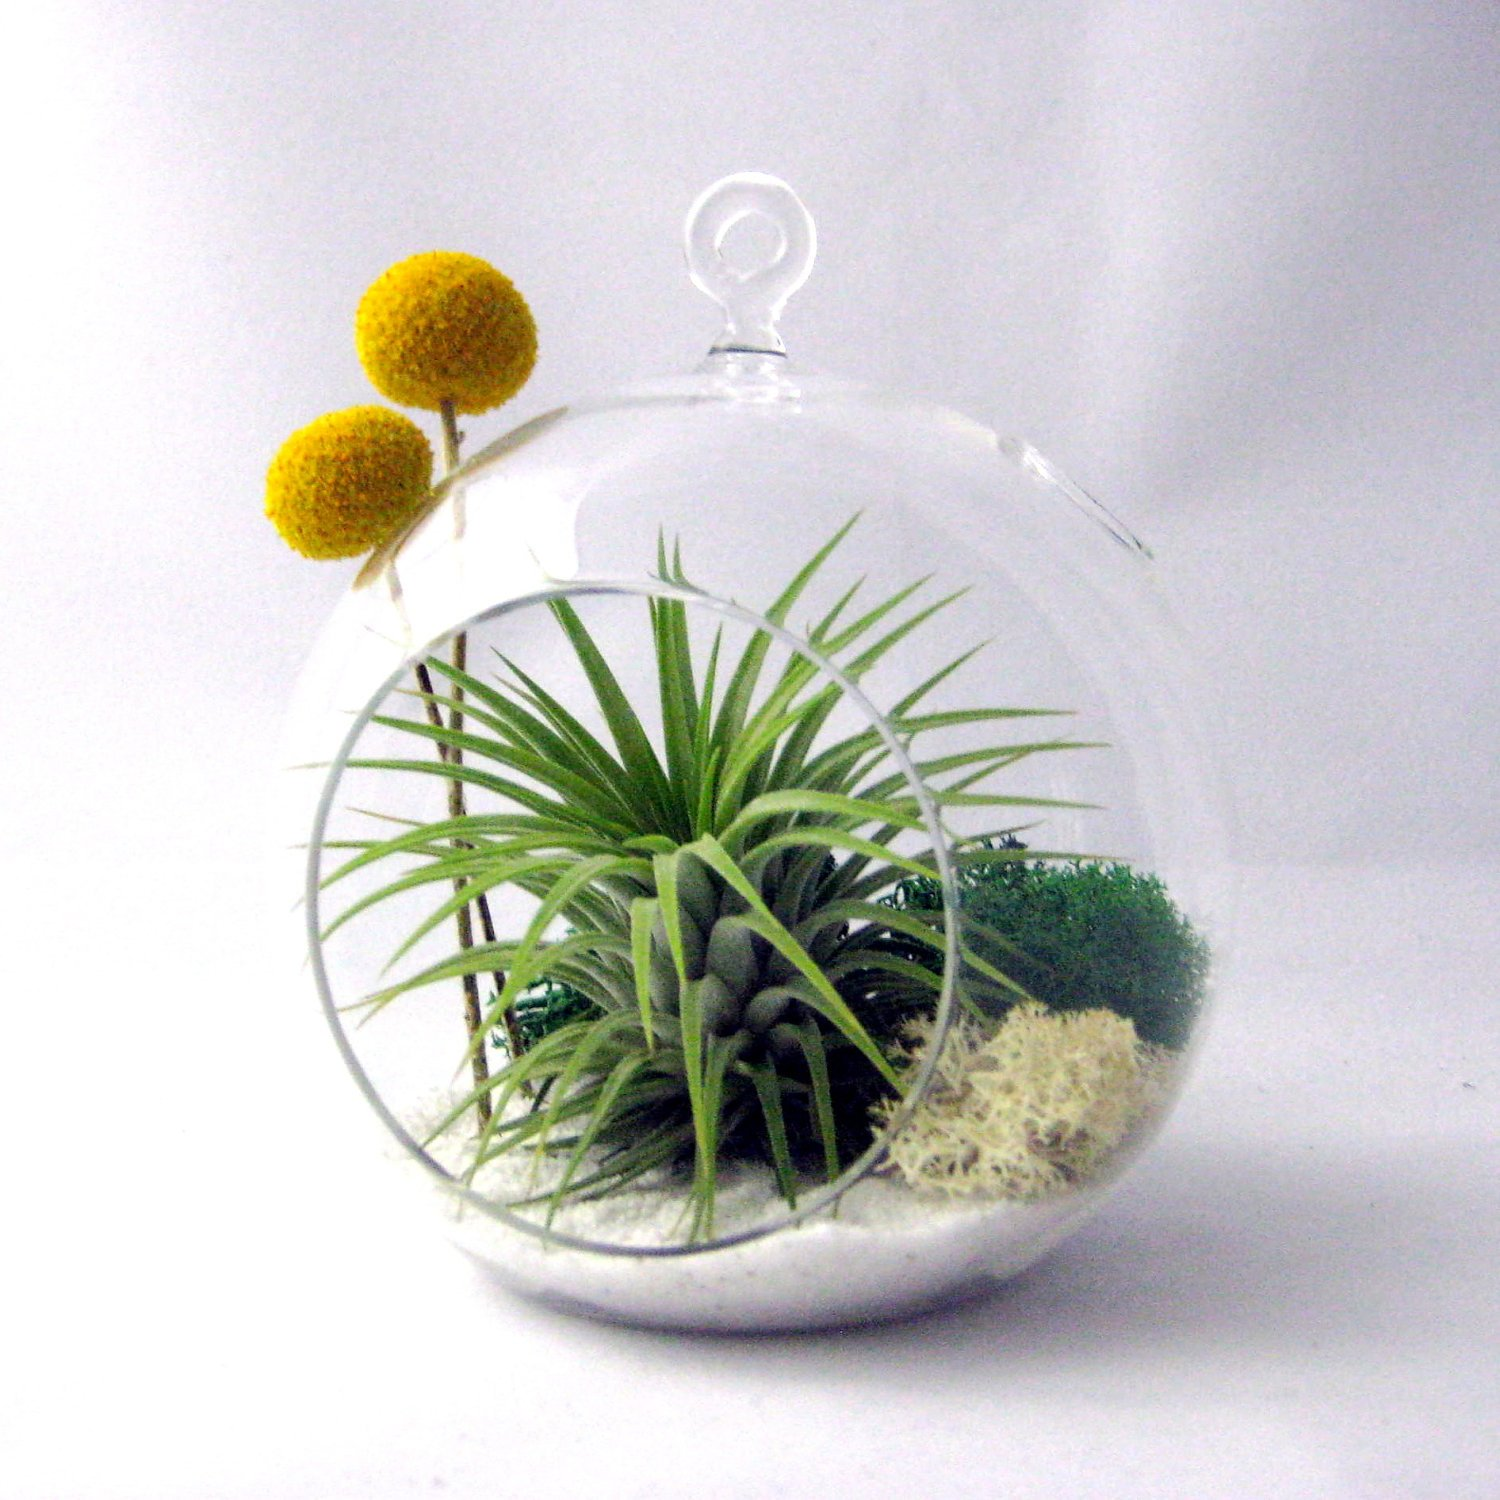 An example of a decorated terrarium adding splashes of yellow against minimalist white_Style Motivation